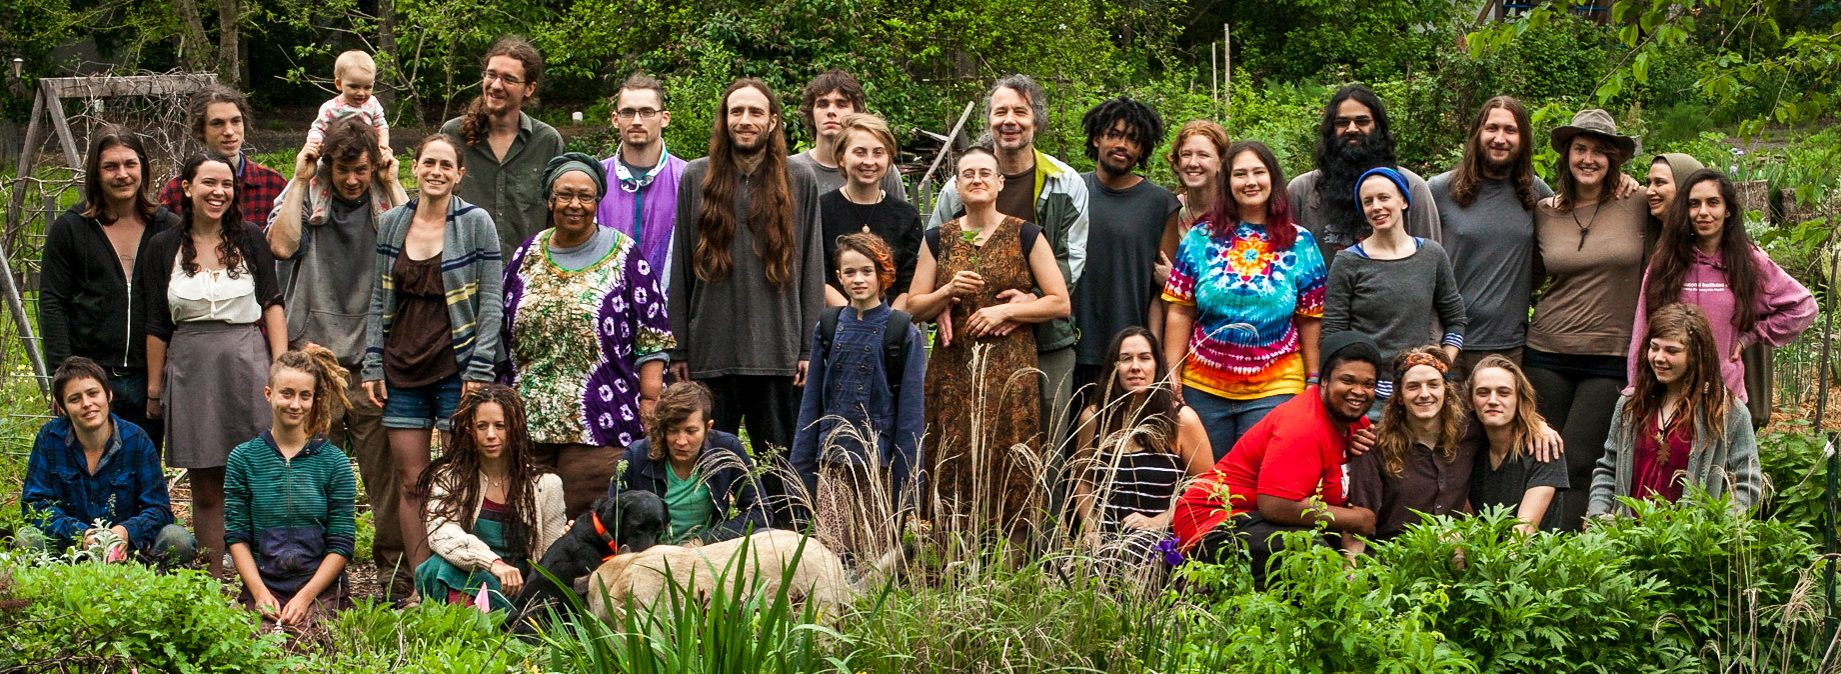 Acorn Community Group Photo 2016